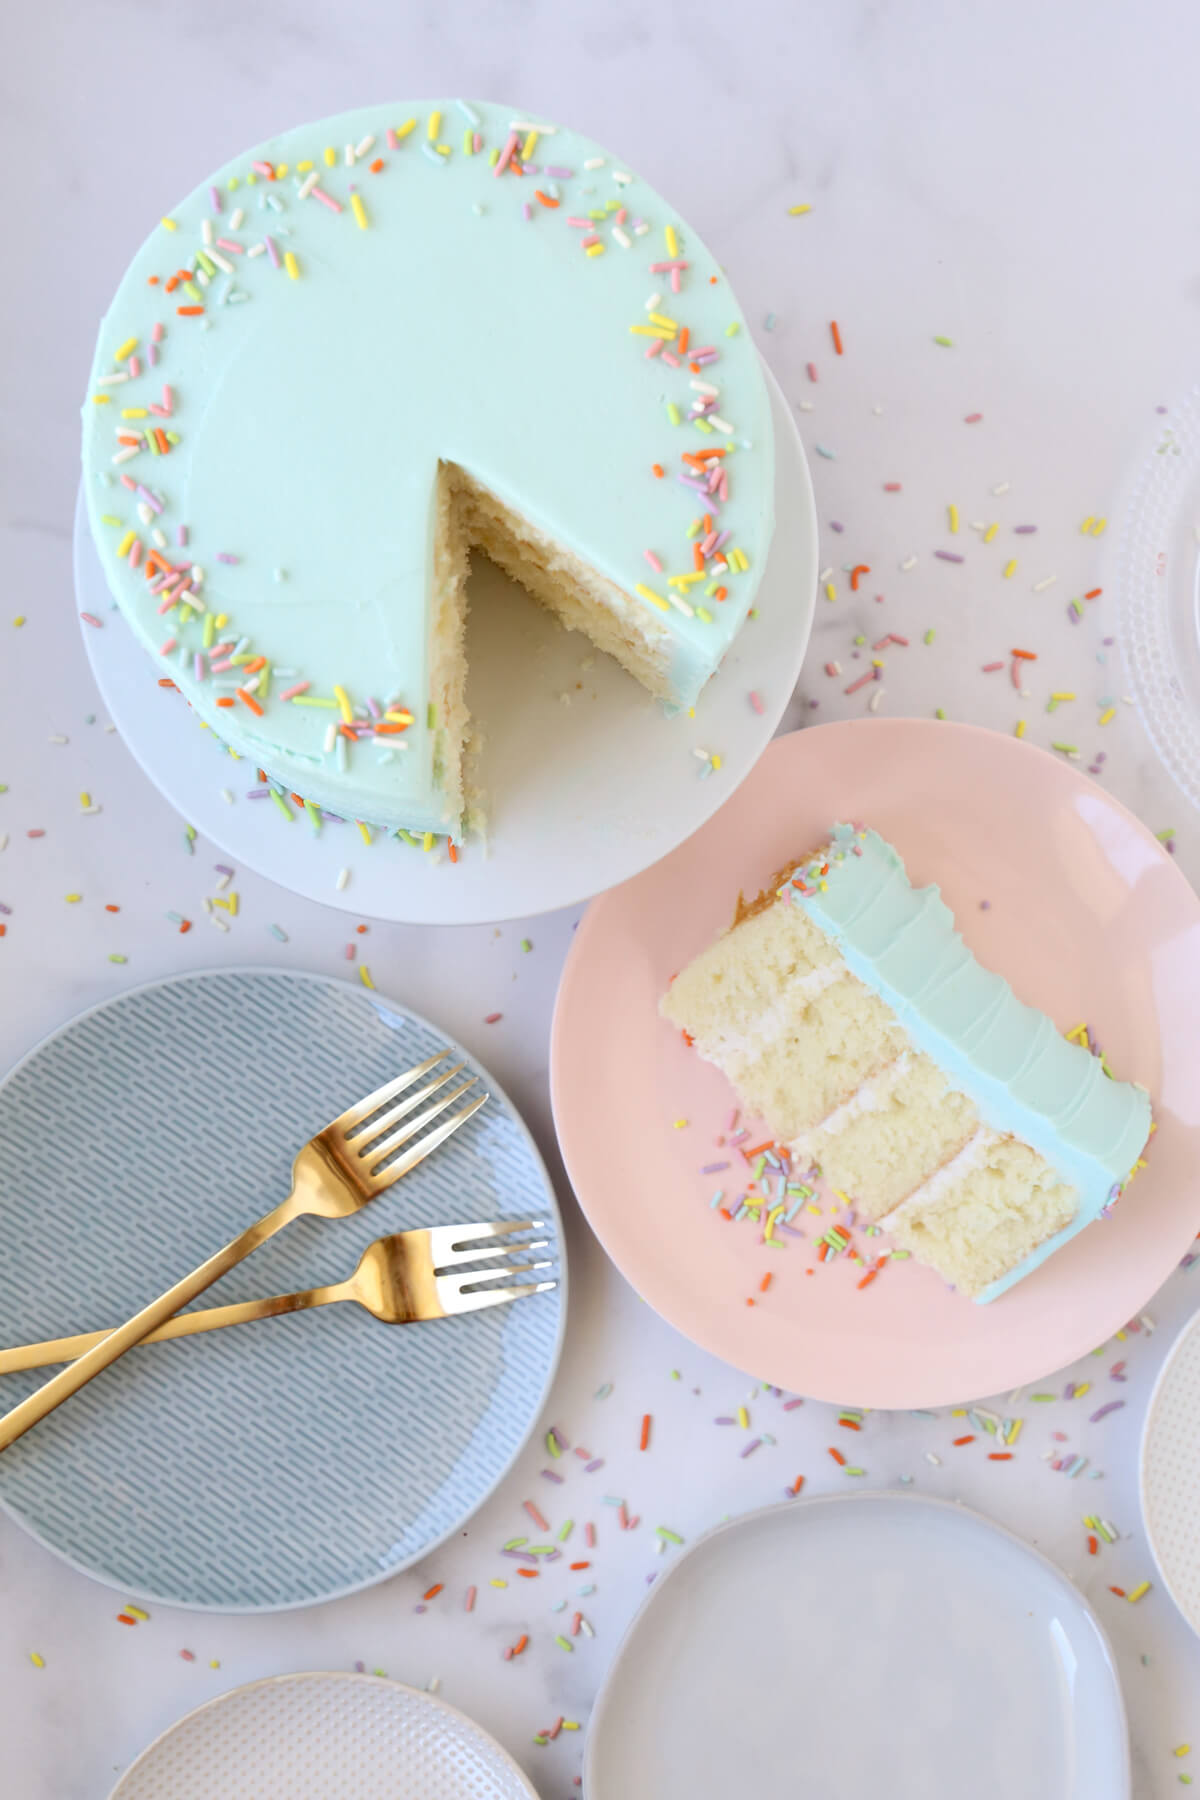 a cake with a slice cut out of it and placed on a pink plate sitting next to two forks.